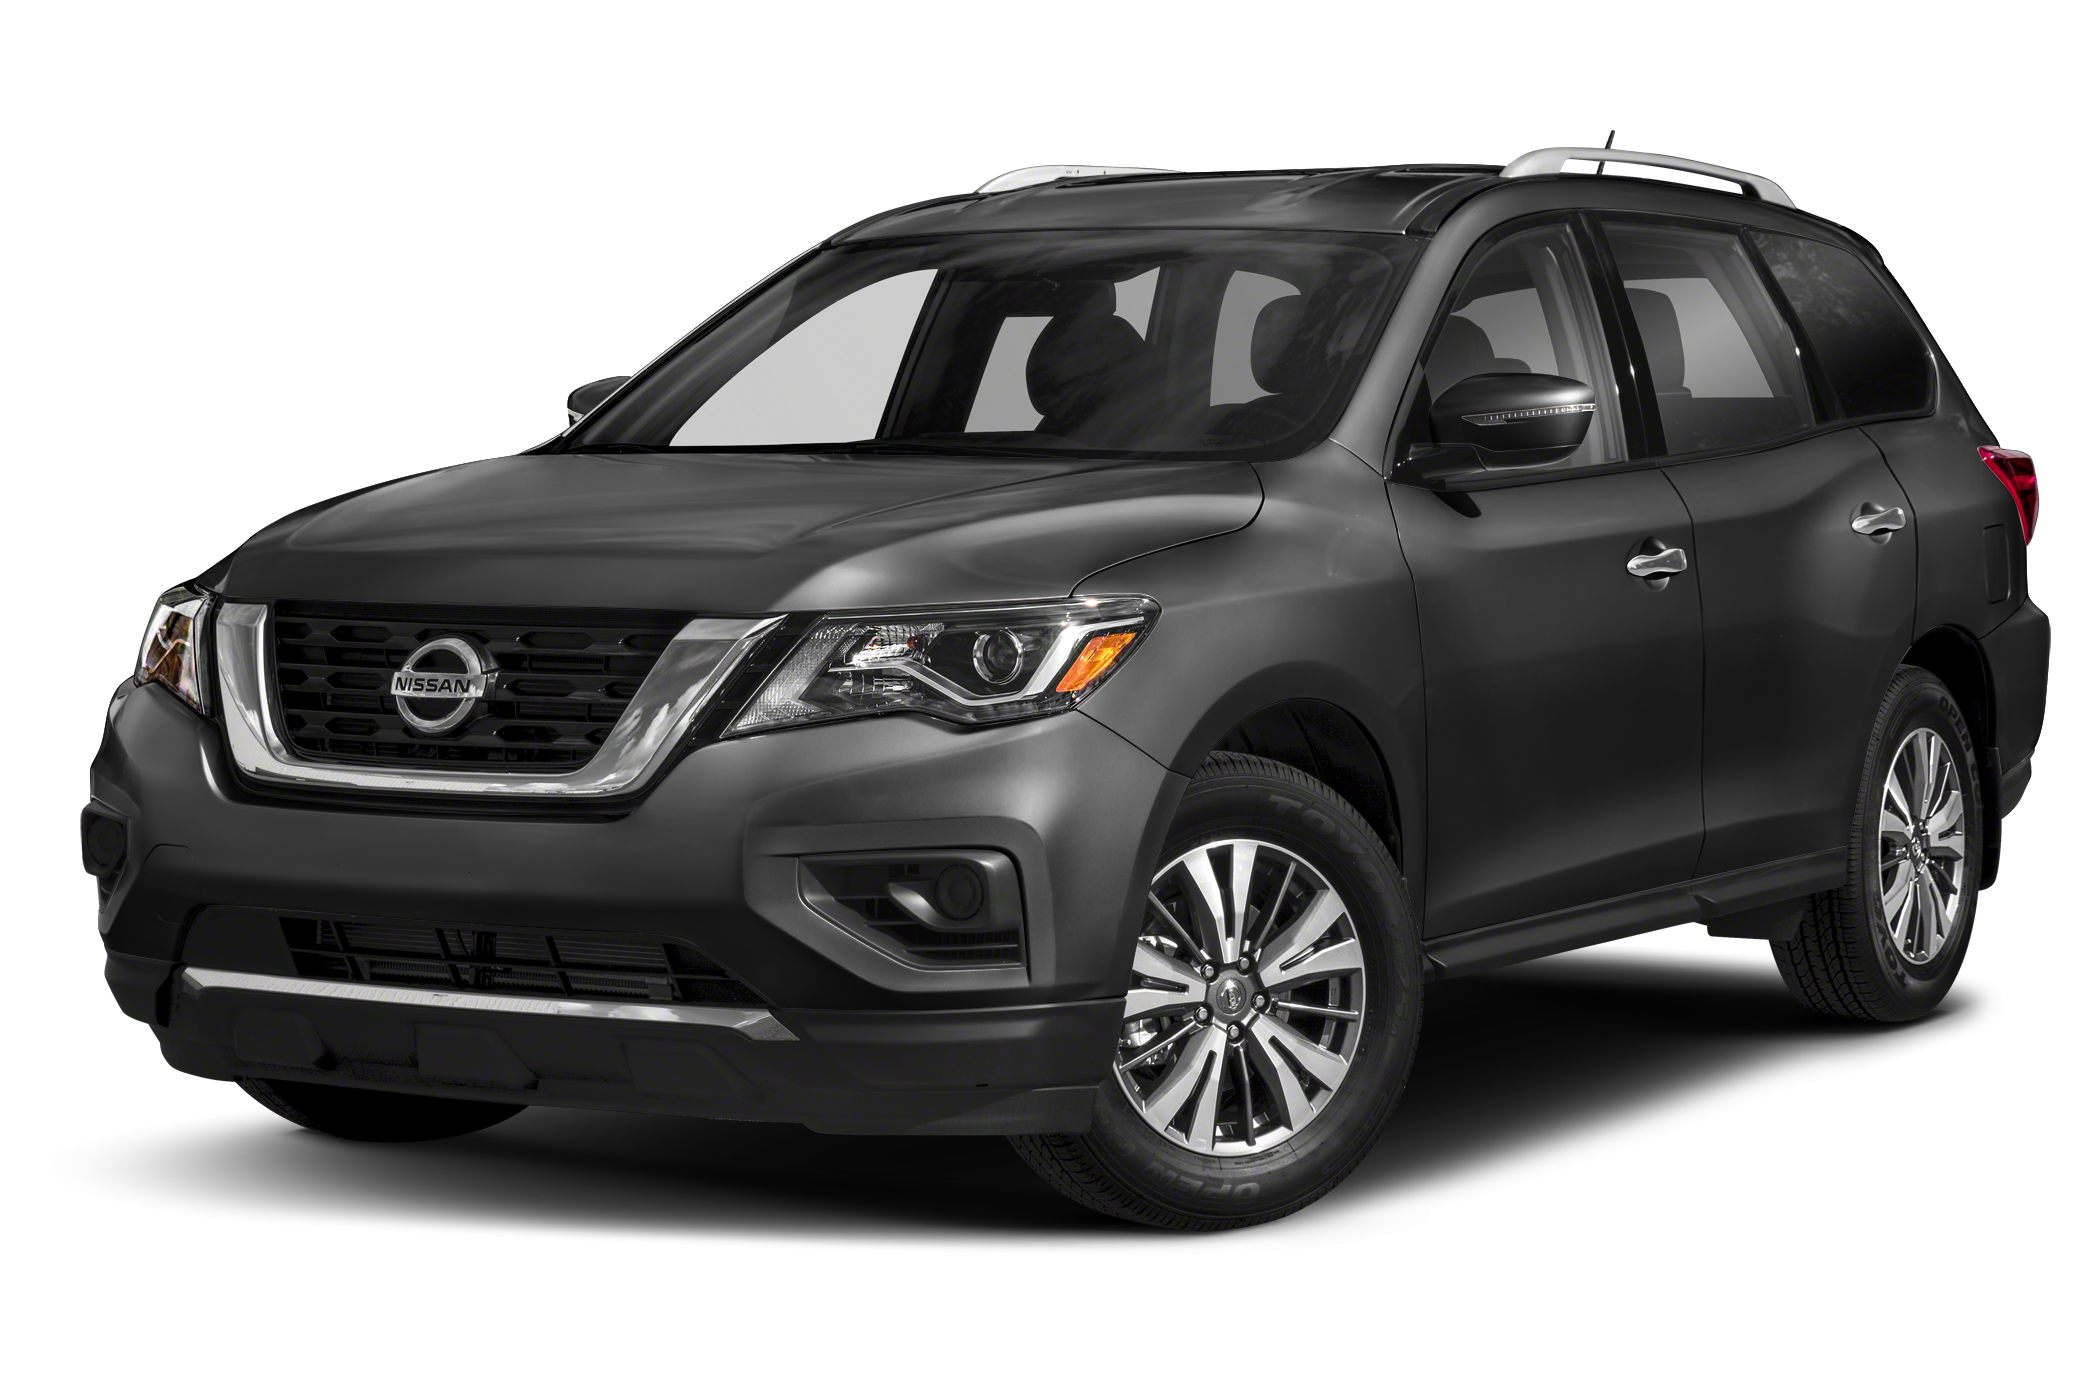 2018 Nissan Pathfinder Deals, Prices, Incentives & Leases, Overview - CarsDirect